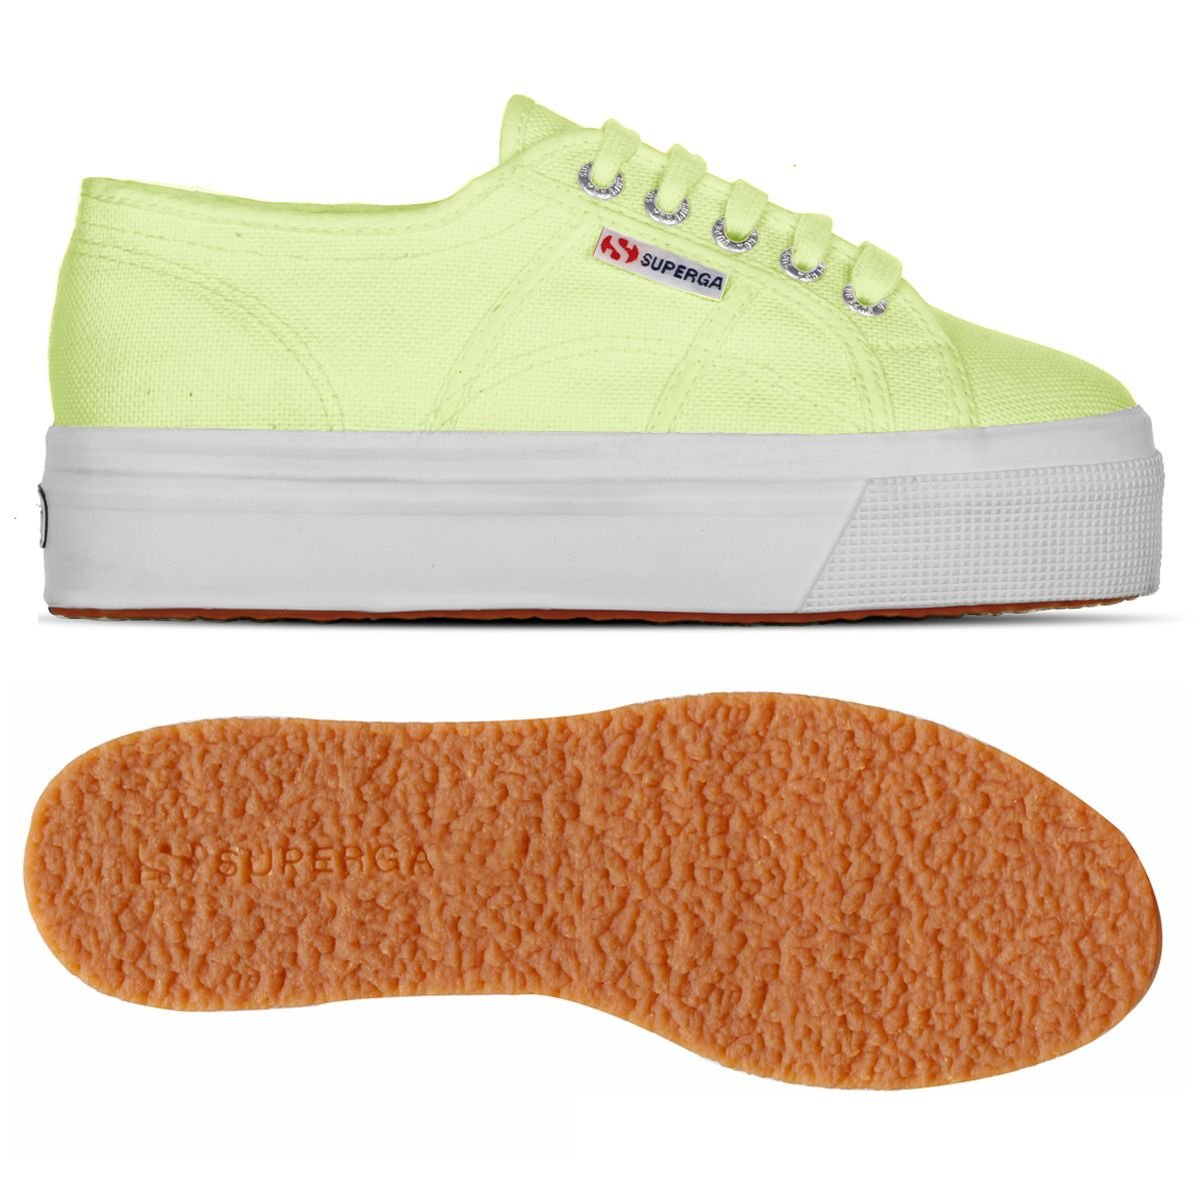 Superga and Damen Acotw Linea Up and Superga Down Sneaker Sunny Lime 492c98